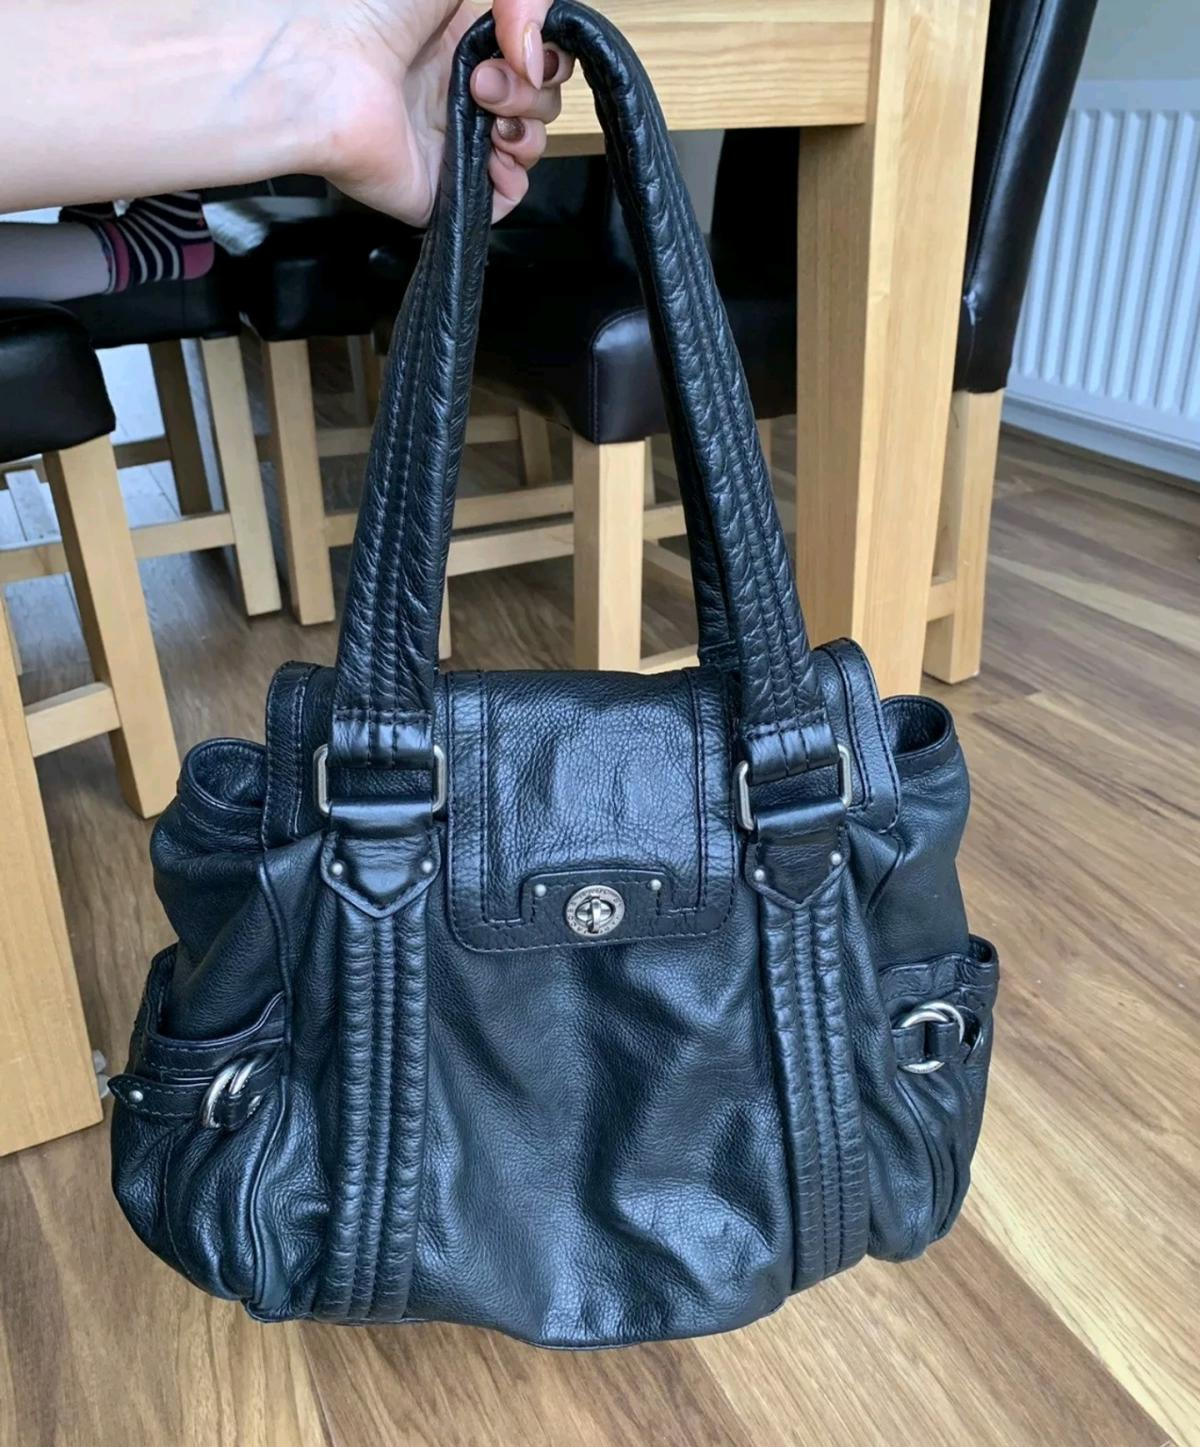 a1af507d7f genuine marc Jacobs preloved handbags in L33 Knowsley for £50.00 for ...